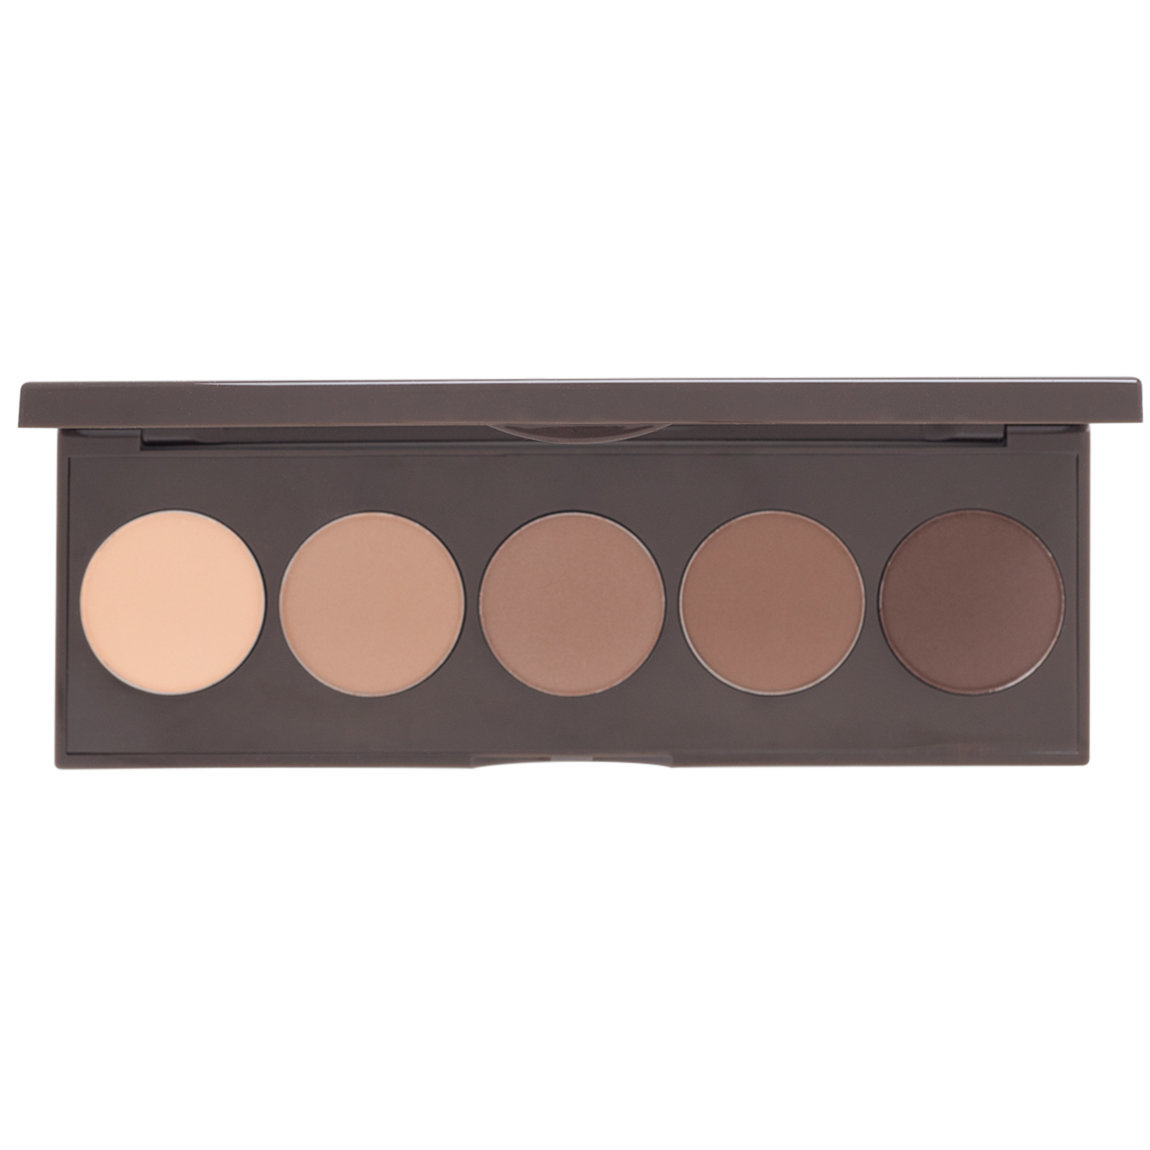 BECCA Ombré Nudes Eye Palette product swatch.